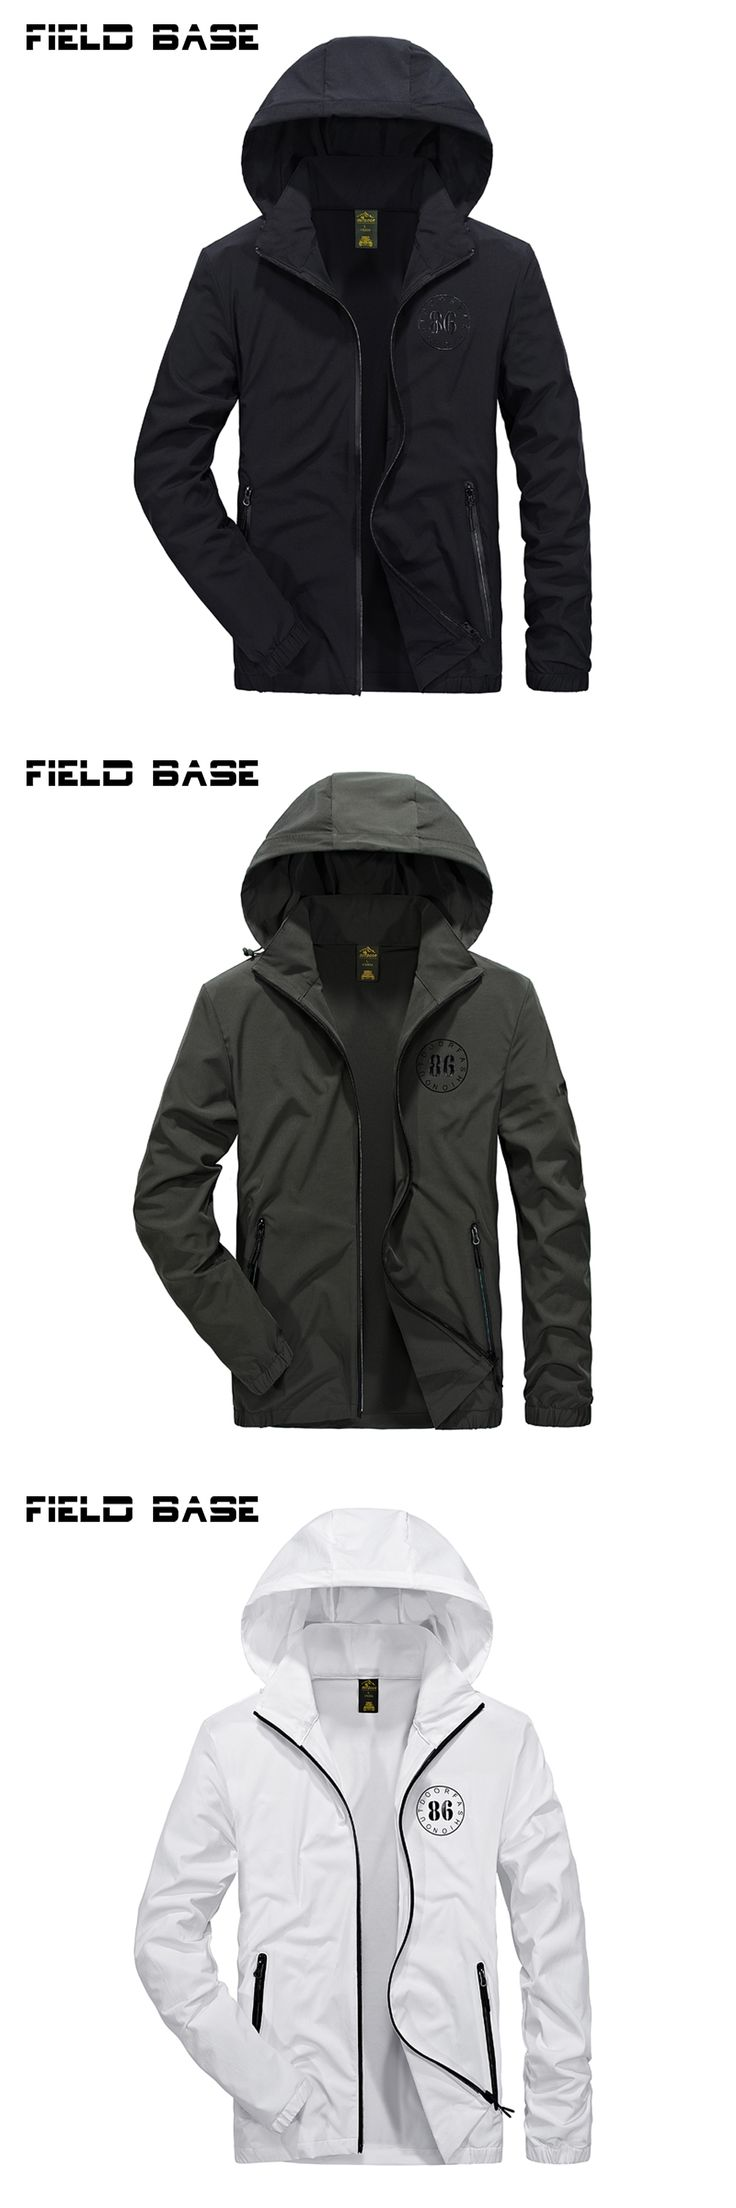 brand clothing Army Camouflage Coat Military soft shell Jacket Waterproof  Army Jacket Men Jackets And Coats Hooded 7315A